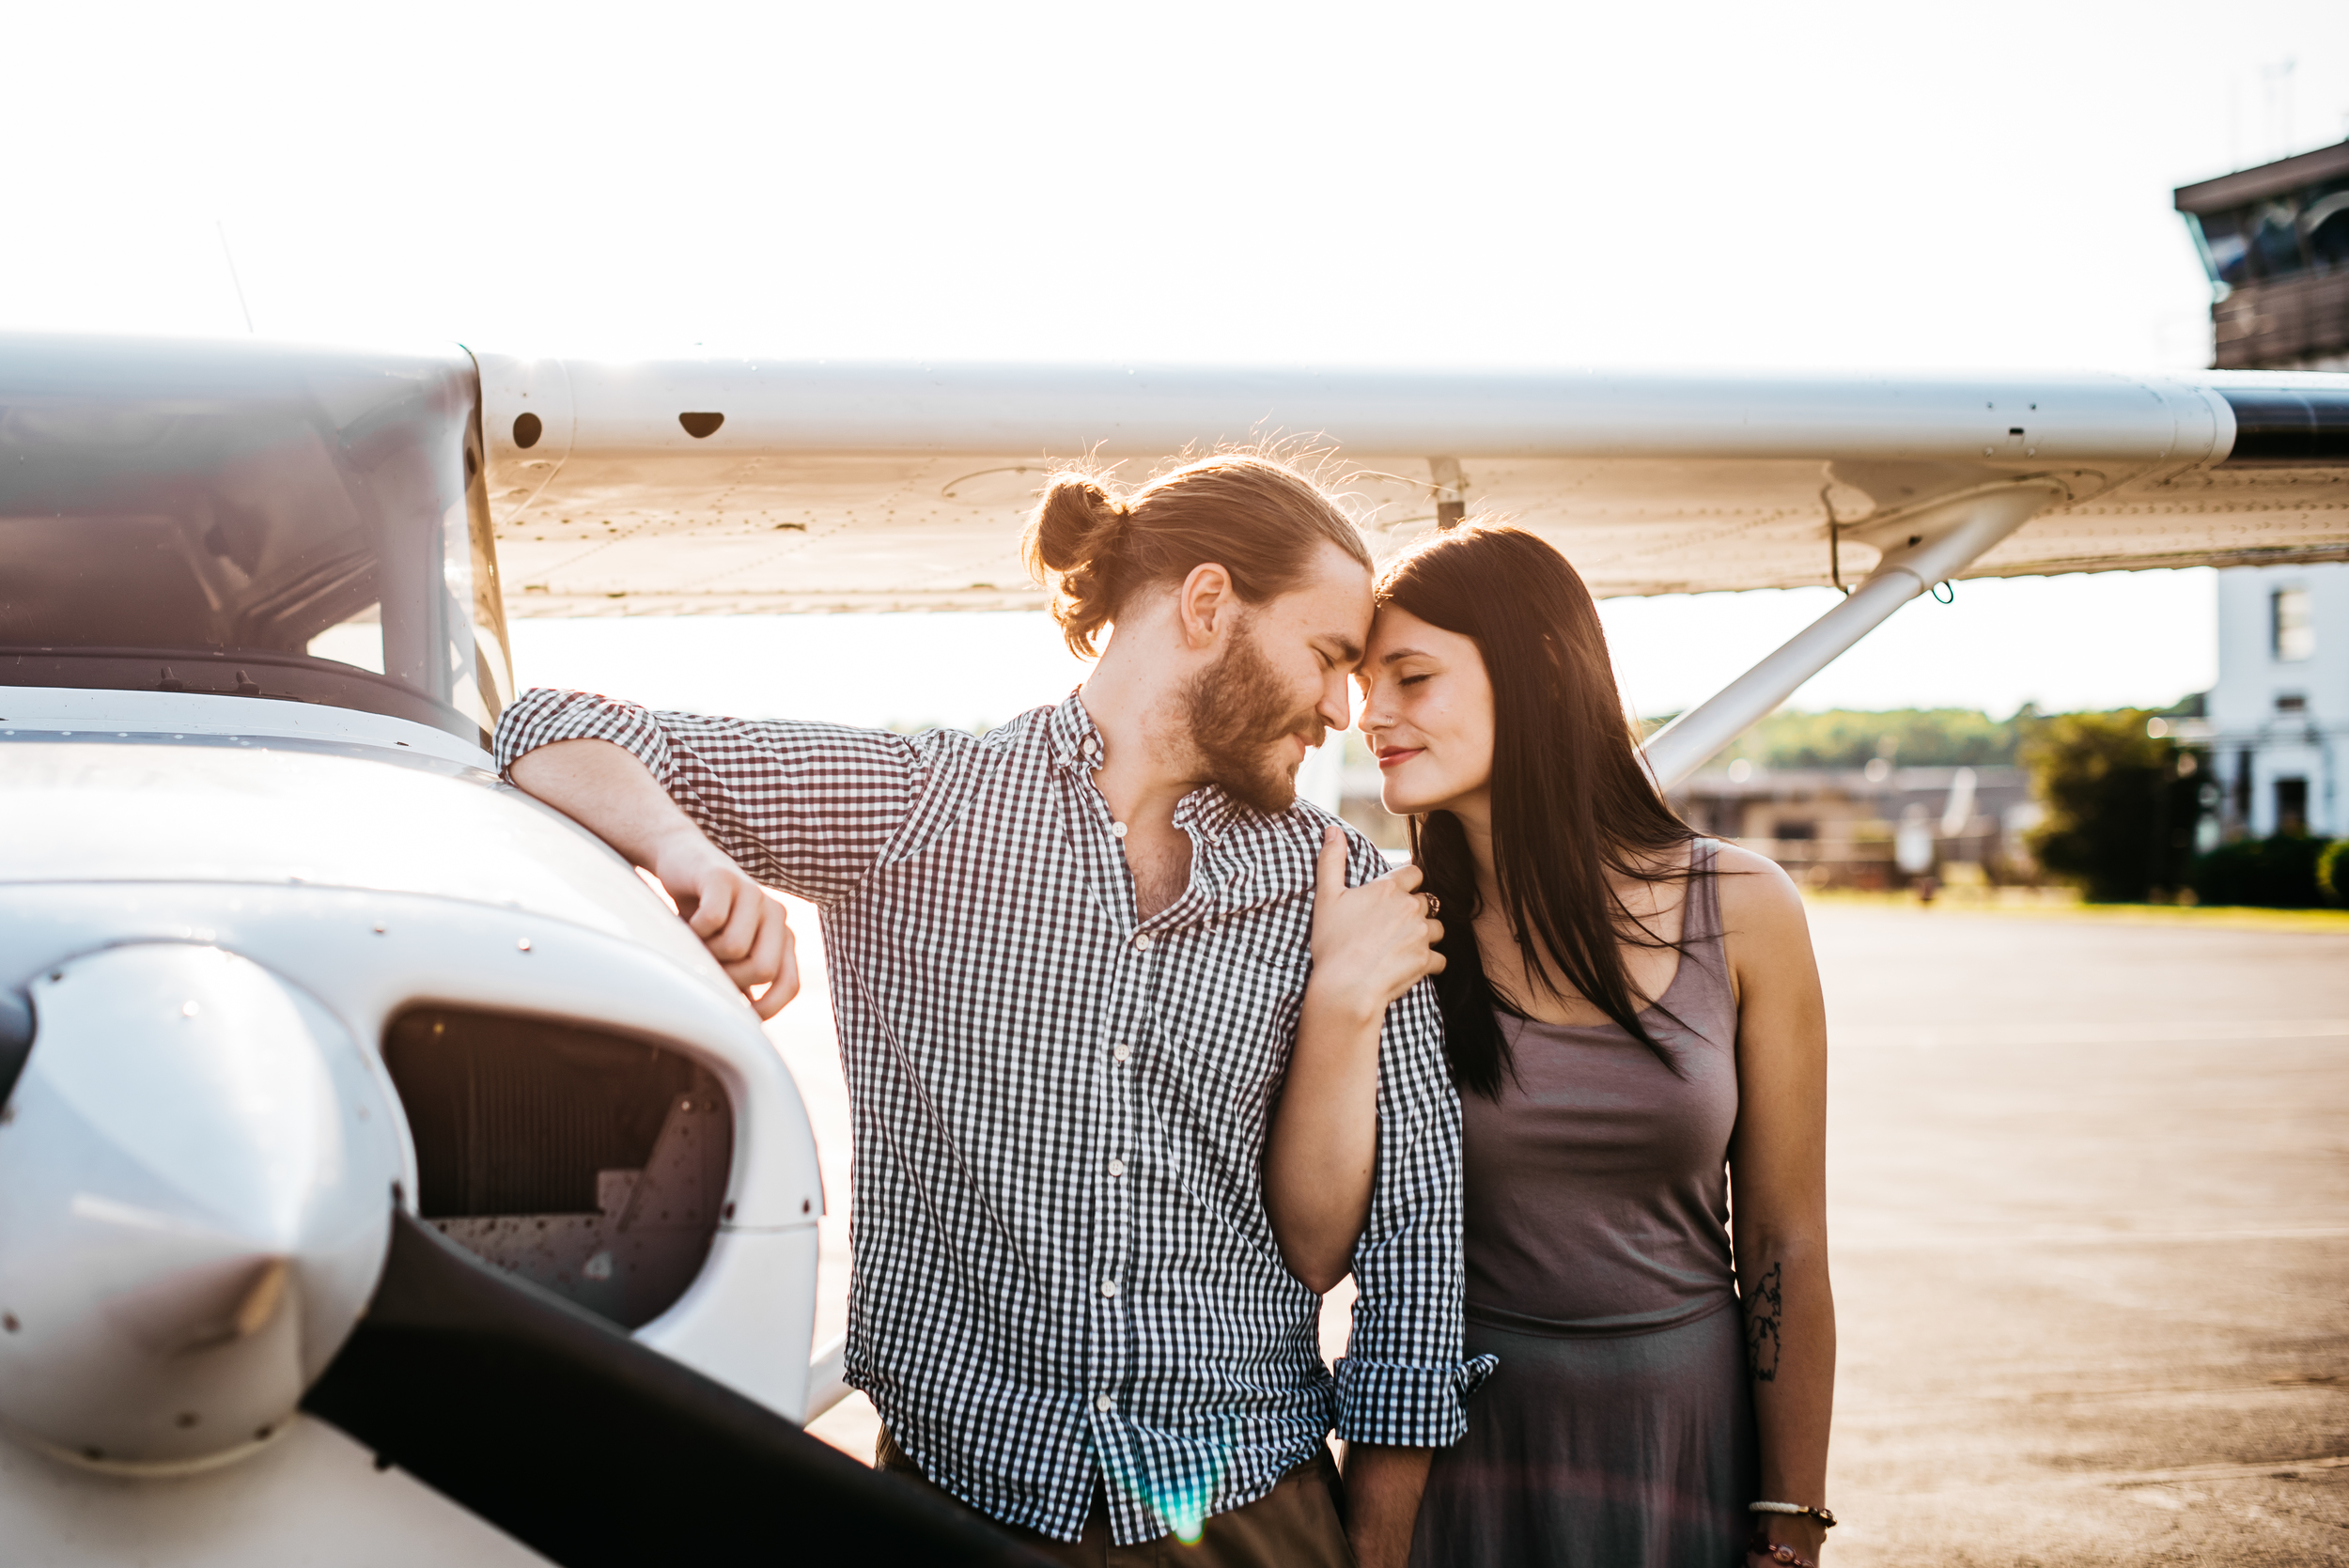 Pittsburgh_airplane_engagement_session006.jpg